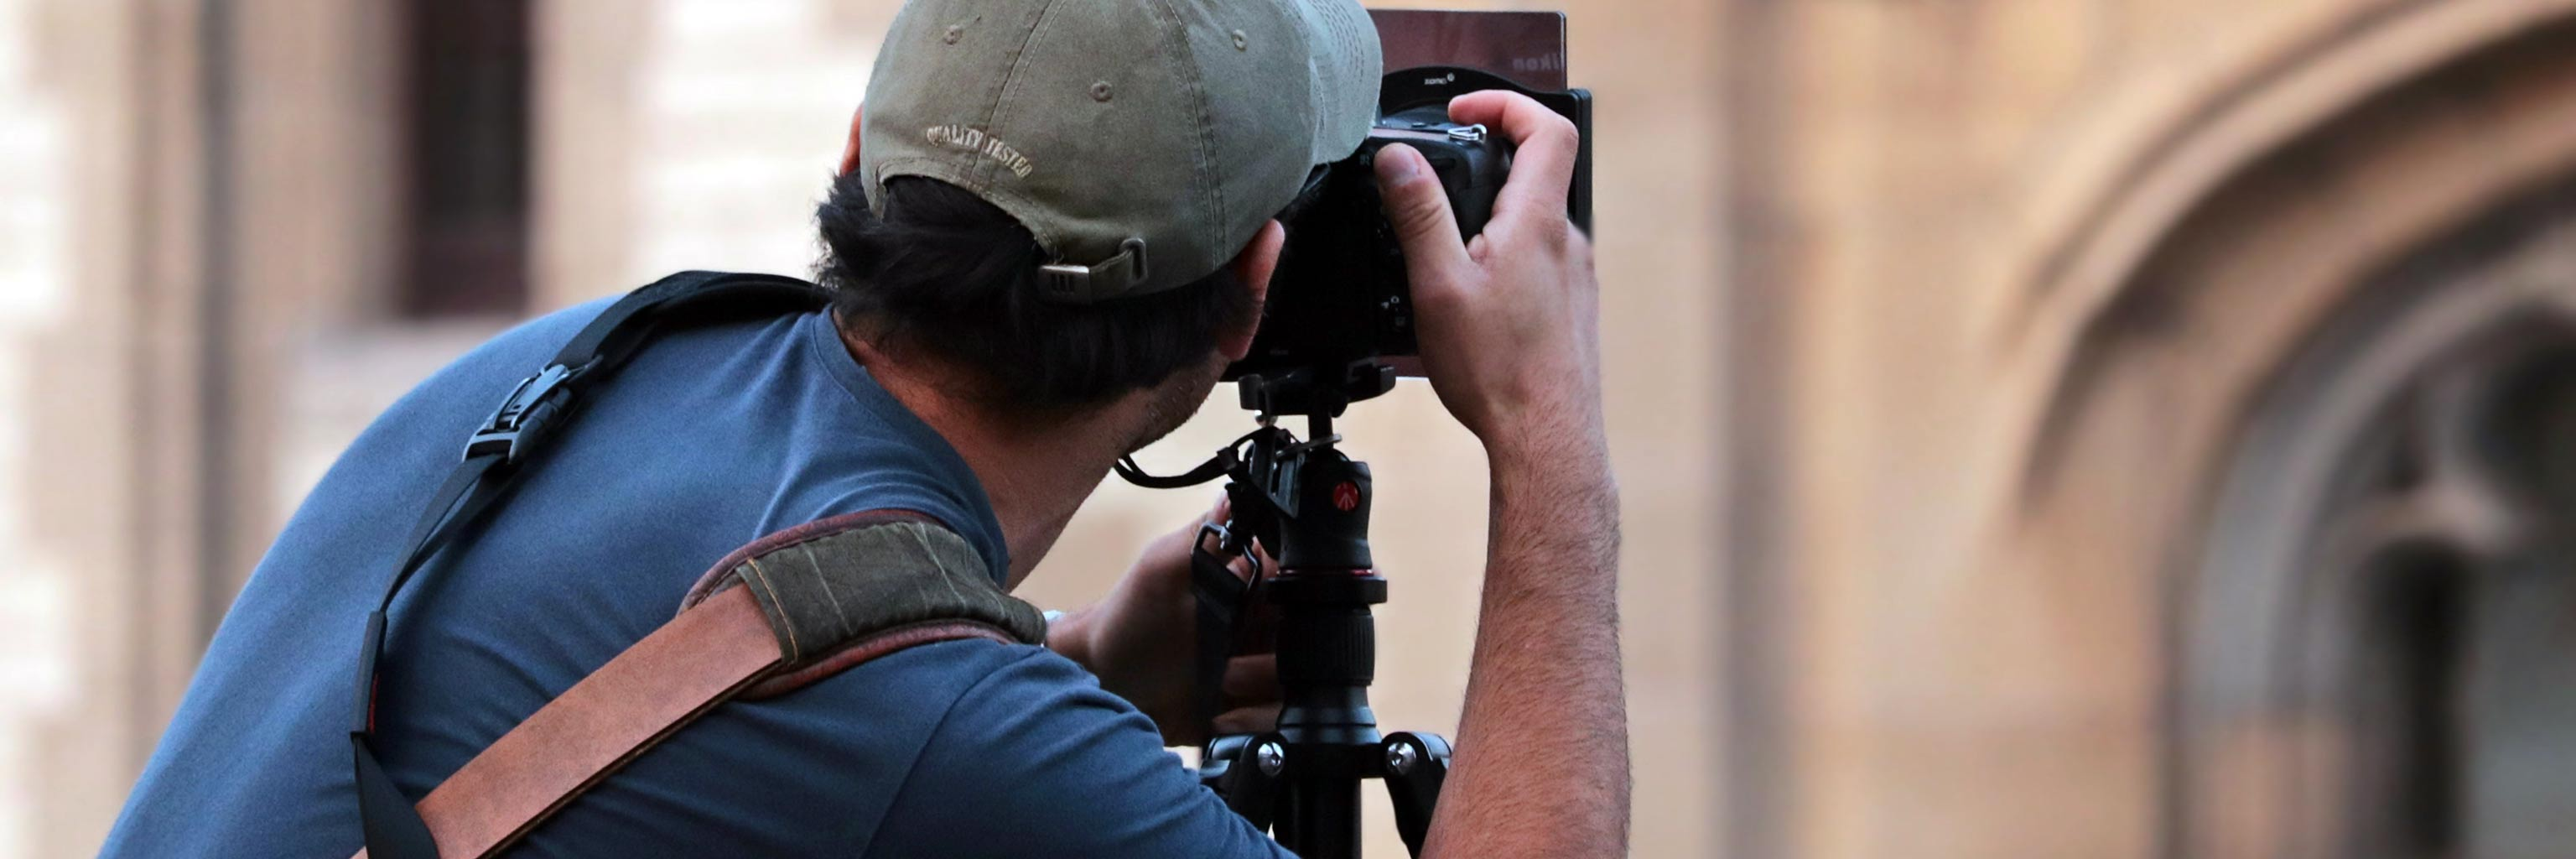 A man in a baseball cap with his back to the viewer  holds a camera up to take a picture of a limestone building